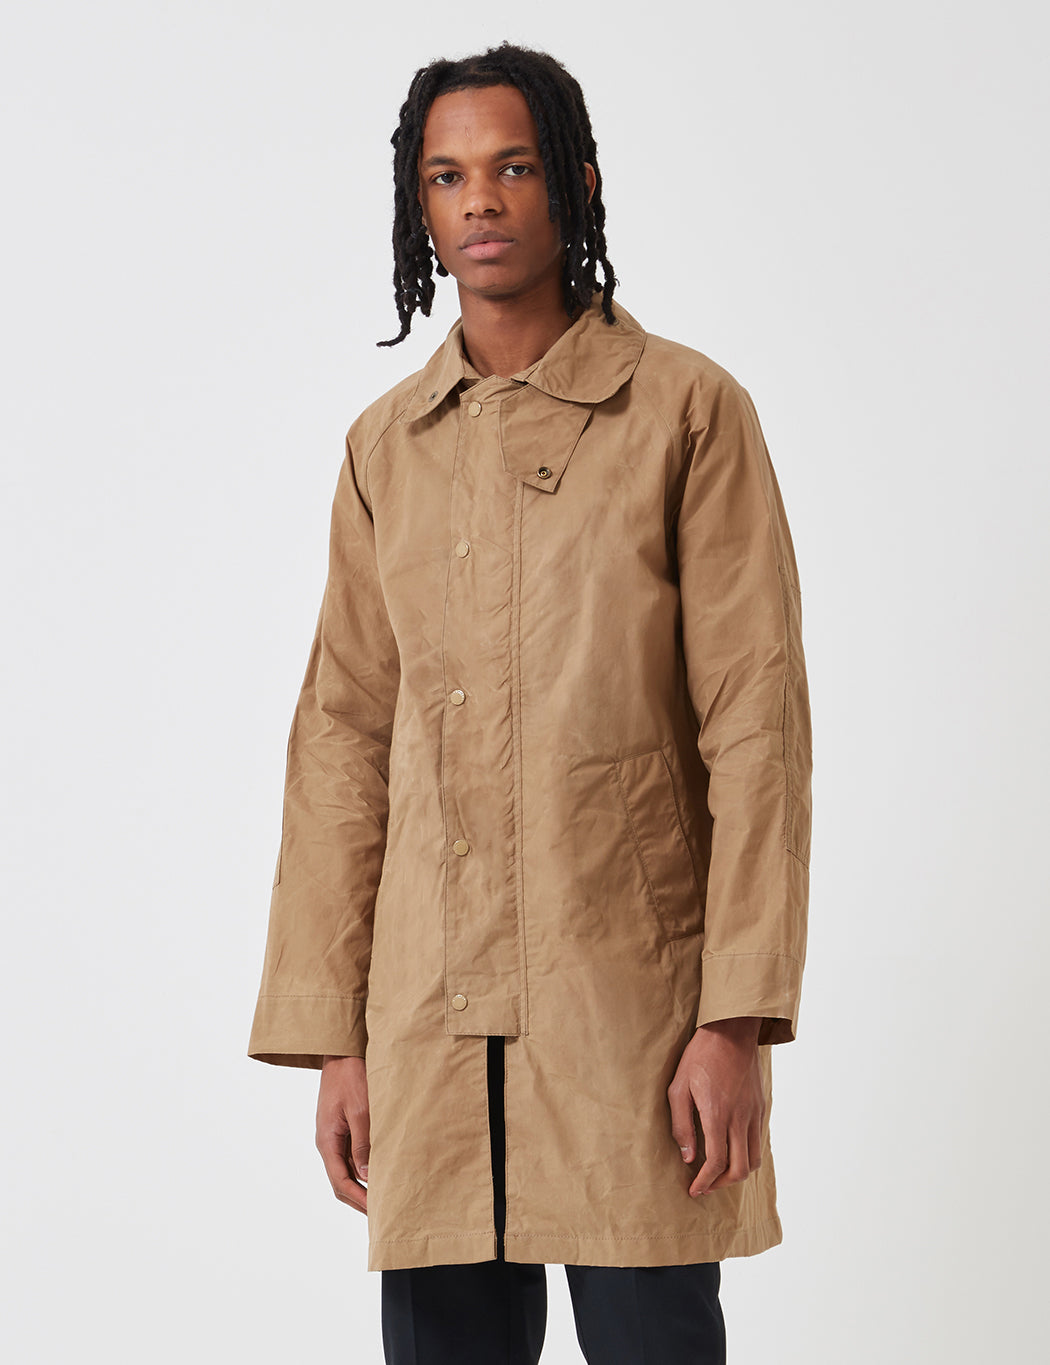 Barbour x Engineered Garments South Jacket - Sand | URBAN EXCESS.